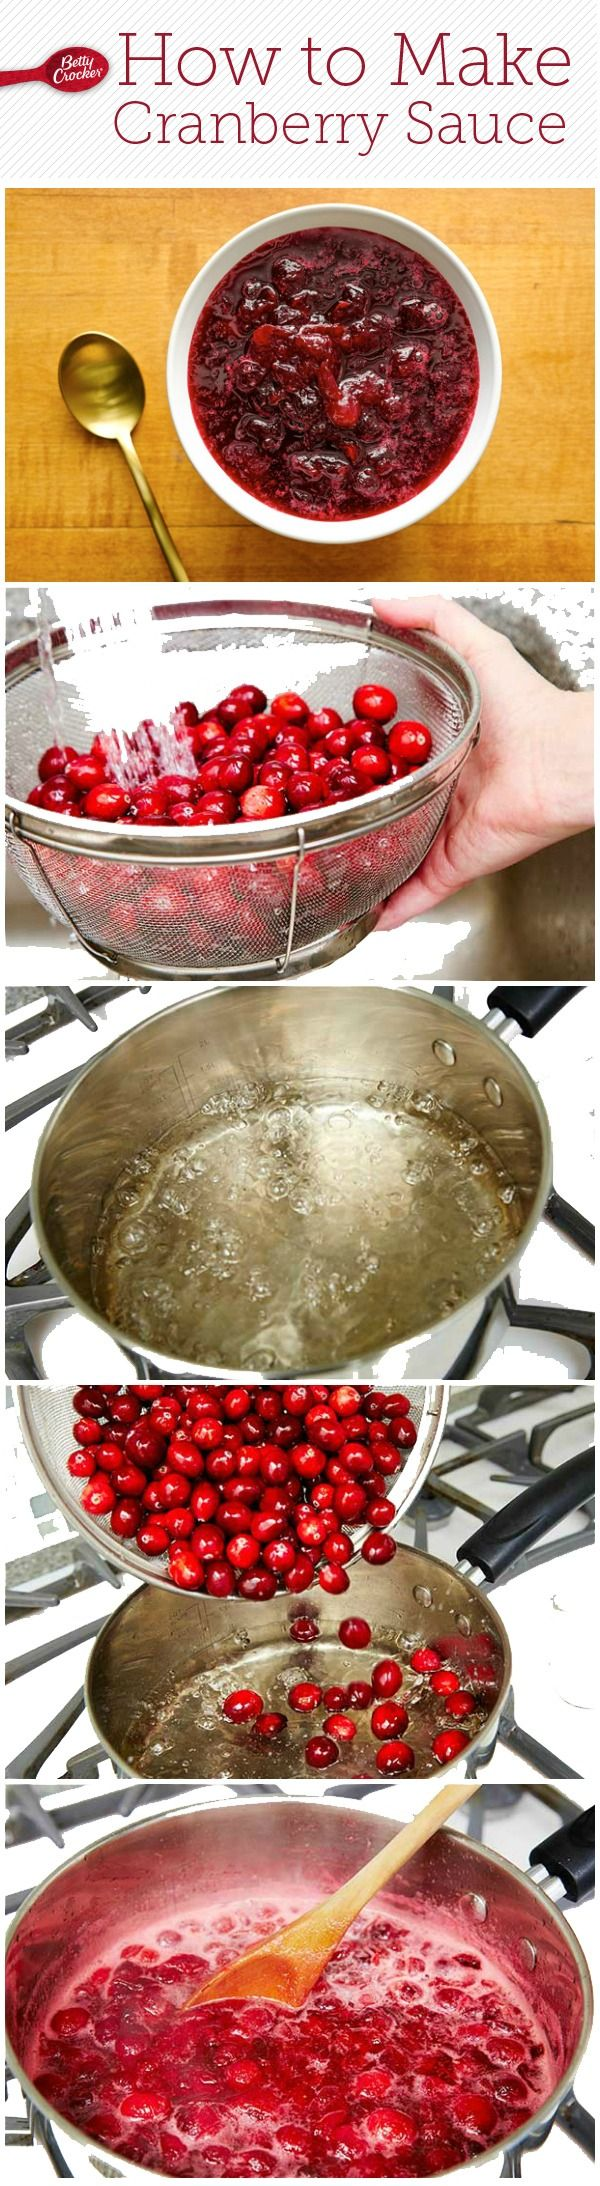 How to make cranberry sauce.  Cranberries, sugar and a quick boil for this sweet Thanksgiving side!